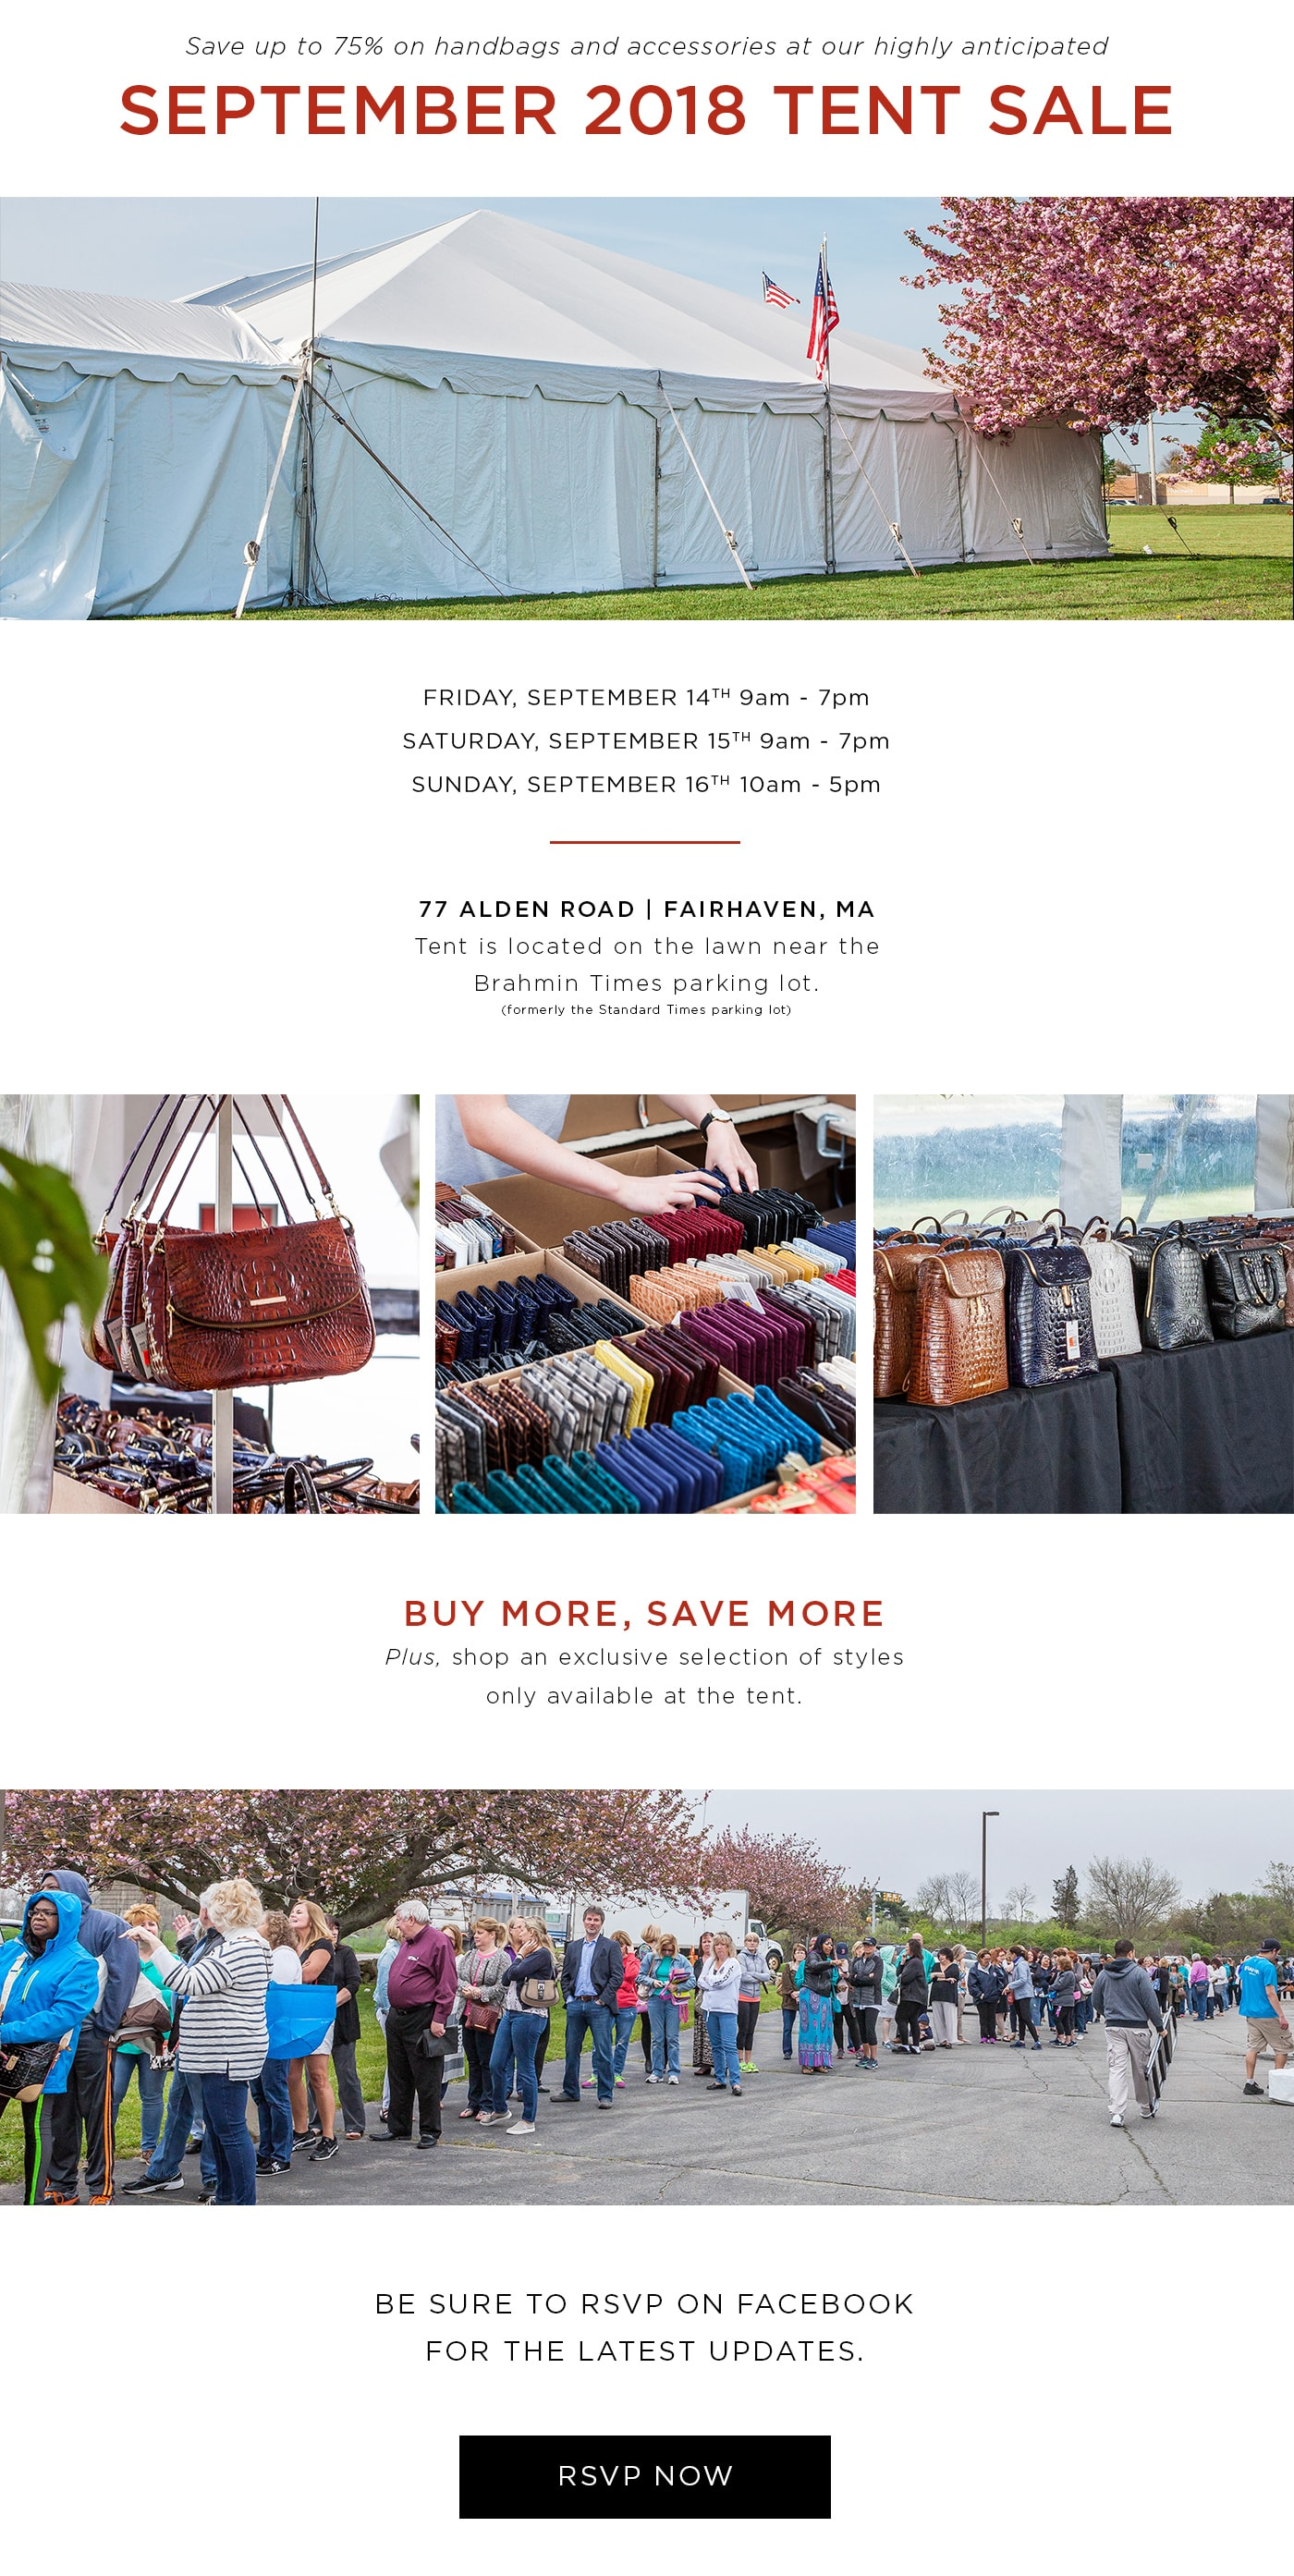 Save up to 75% on handbags and accessories at our highly anticipated September 2018 Tent Sale. Friday, September 14th 9am-6pm. Saturday, September 15th 9am-6pm. Sunday, September 16th 10am-5pm. 77 Alden Road, Fairhaven, MA. Tent is located on the lawn near the Brahmin Times parking lot (formerly the Standard Times parking lot). Buy more, save more! Plus, shop an exclusive selection of styles only available at the tent.